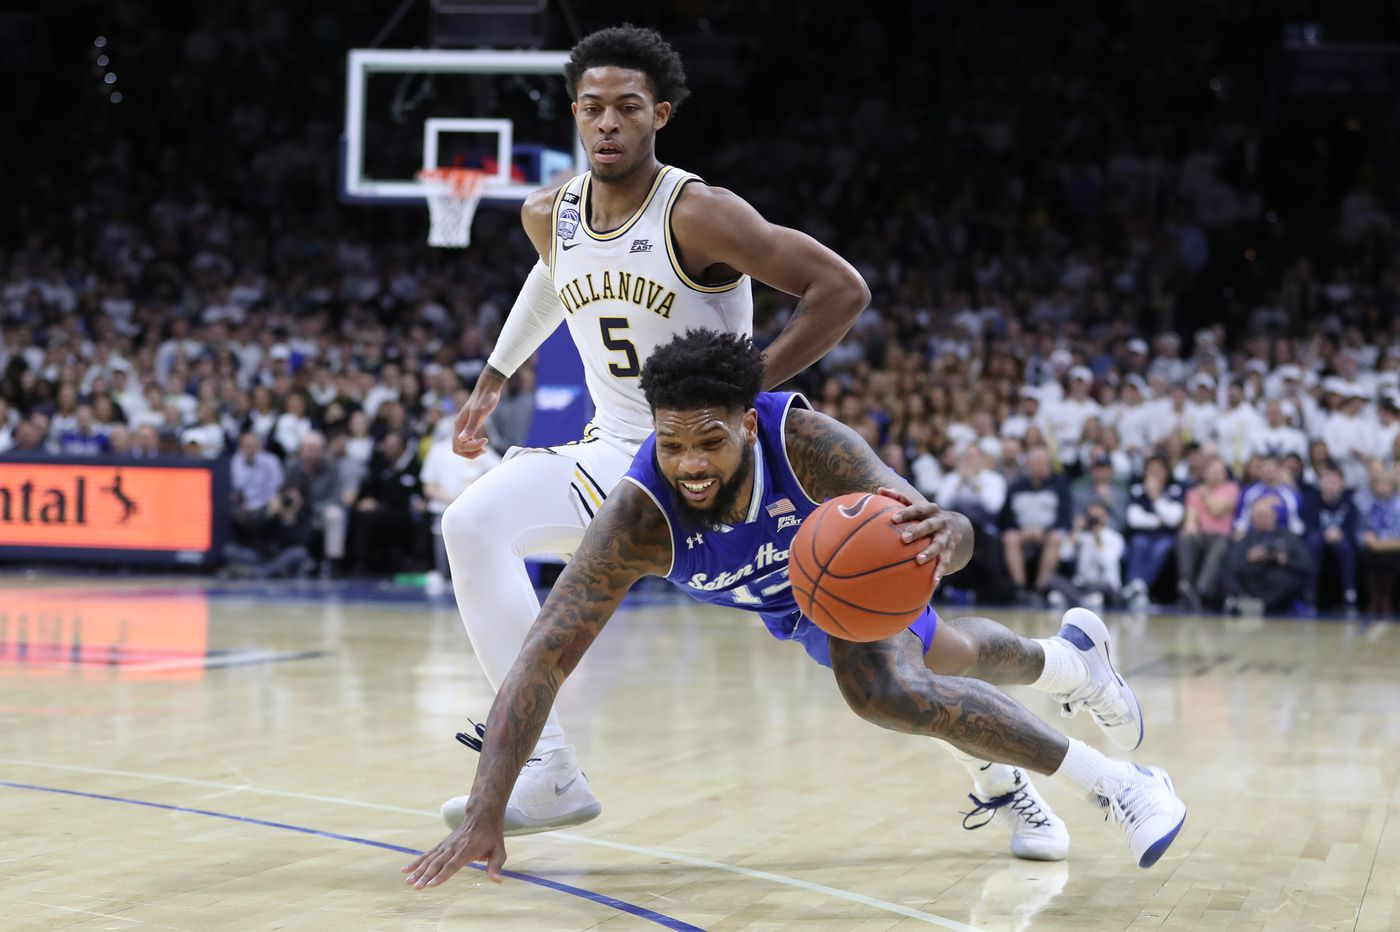 No. 12 Seton Hall 70, No. 10 Villanova 64: Stats, highlights and reaction from the game of the year (to date) in the Big East